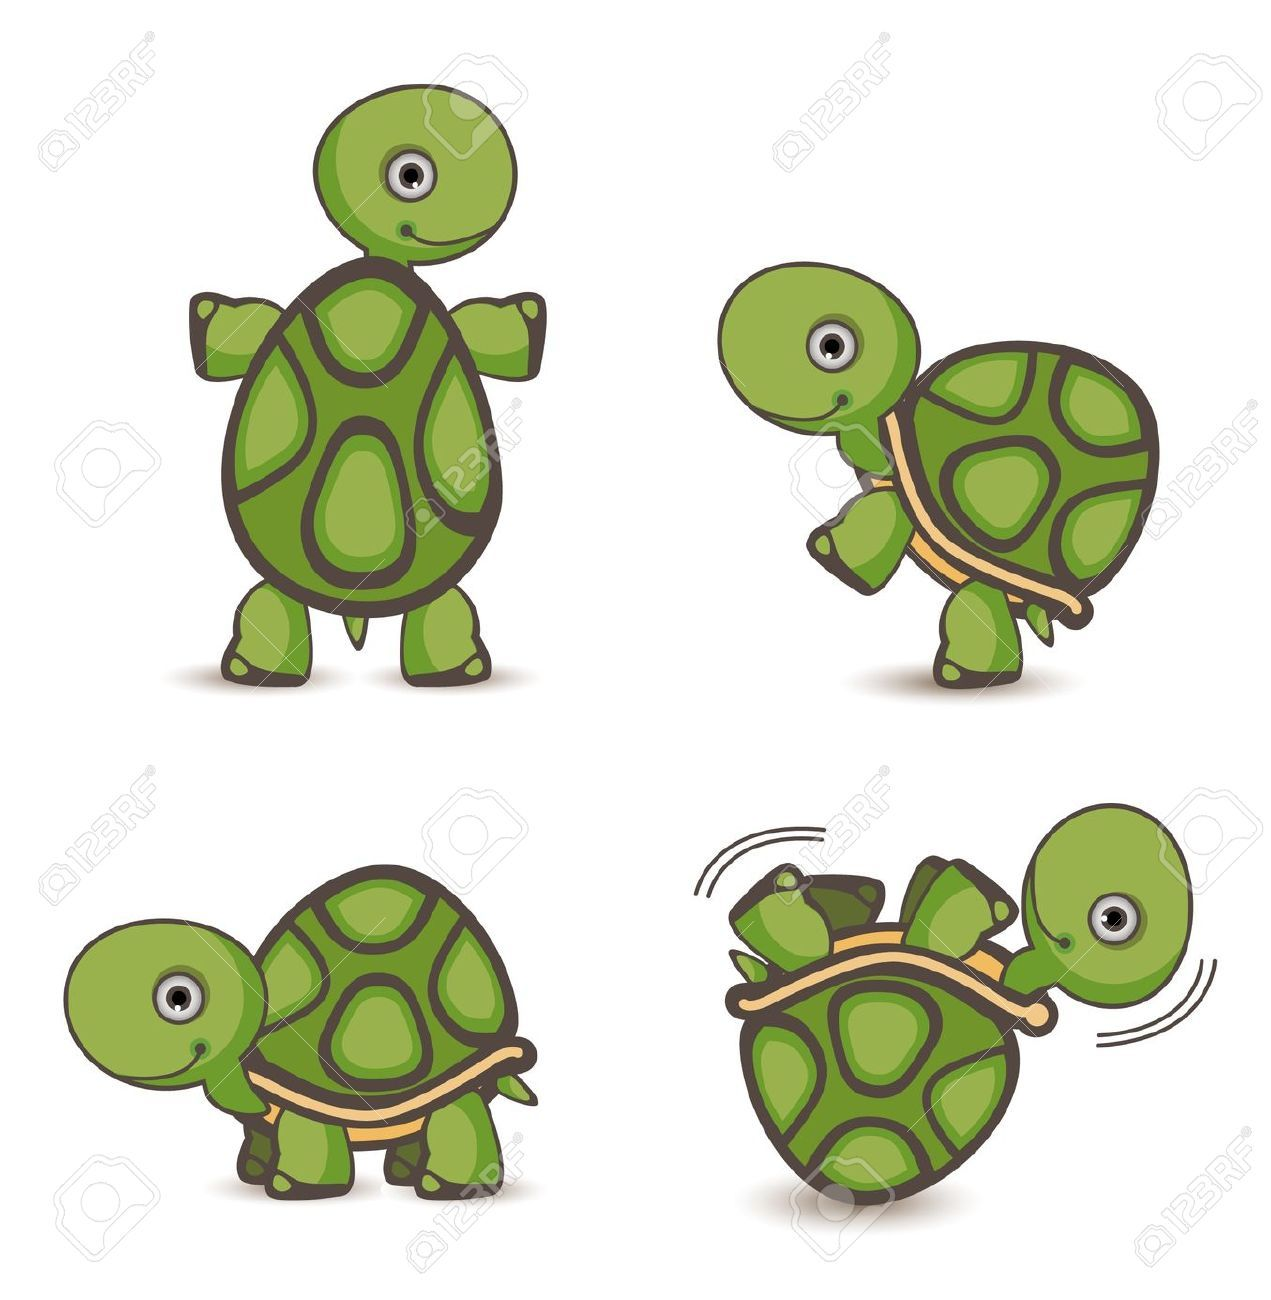 Image result for cute turtle clipart | bib | Cute turtle ...